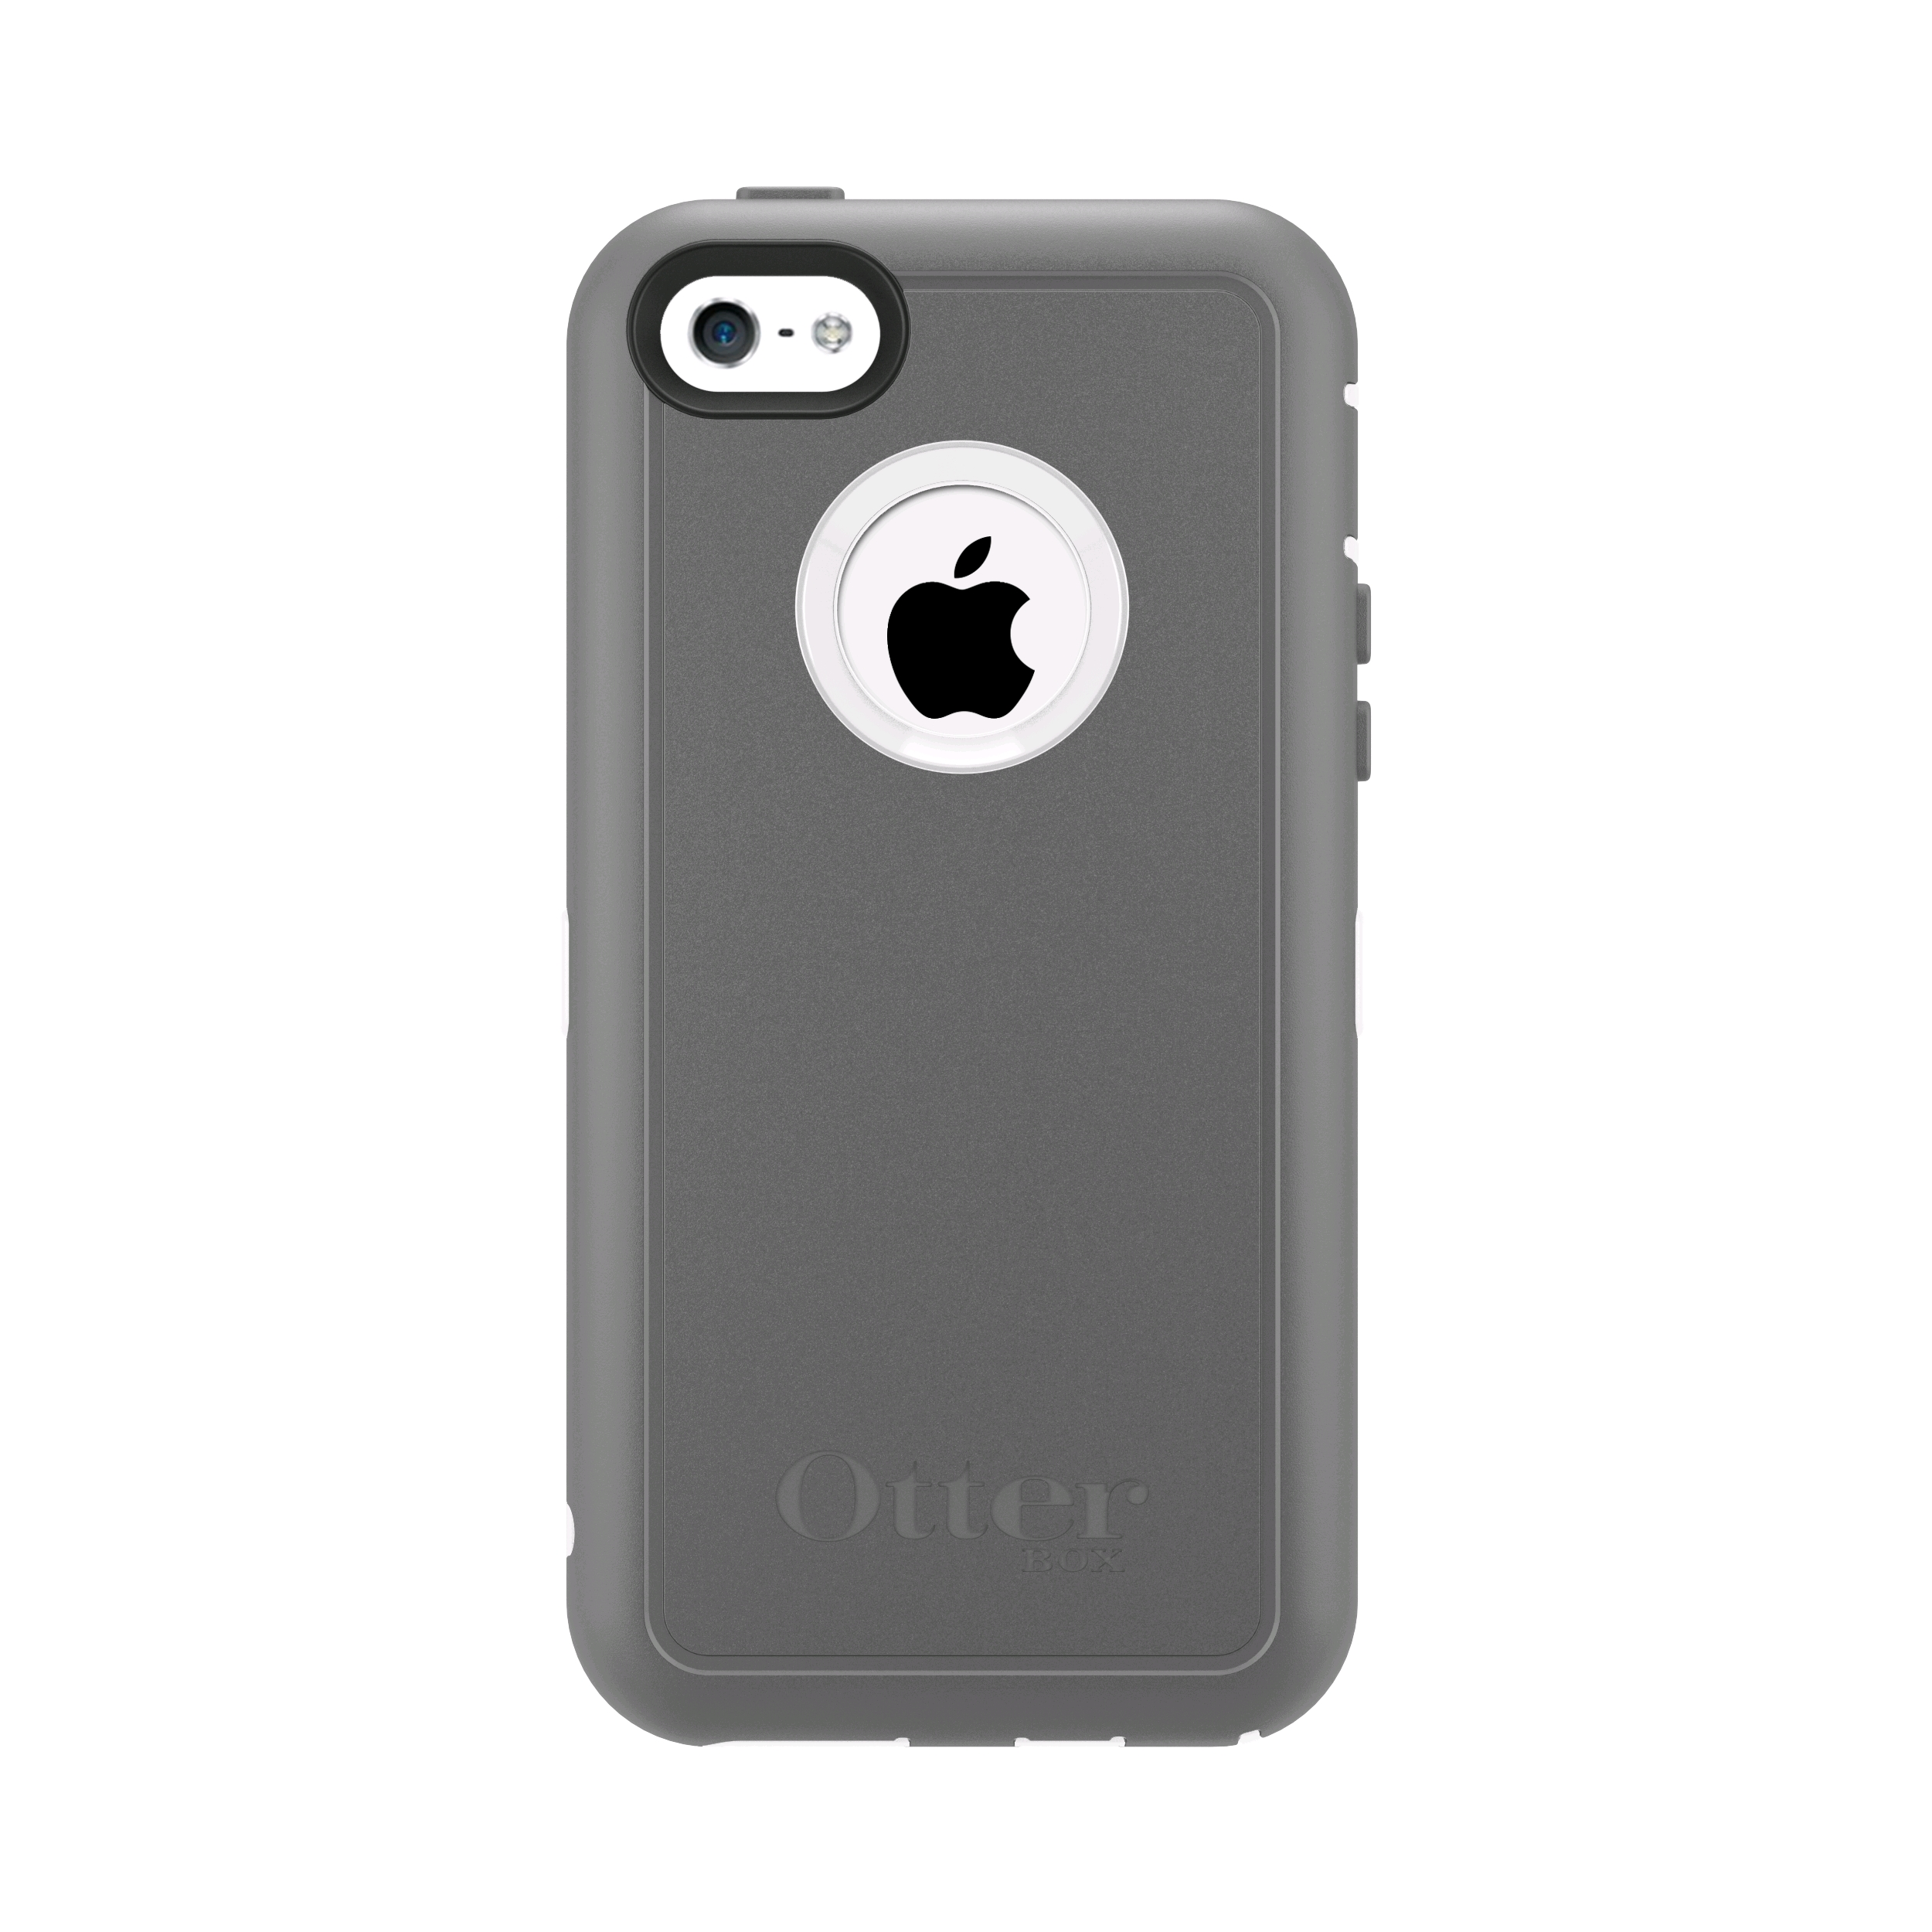 OtterBox Defender Case for iPhone 5c (Glacier) - EXPANSYS ...